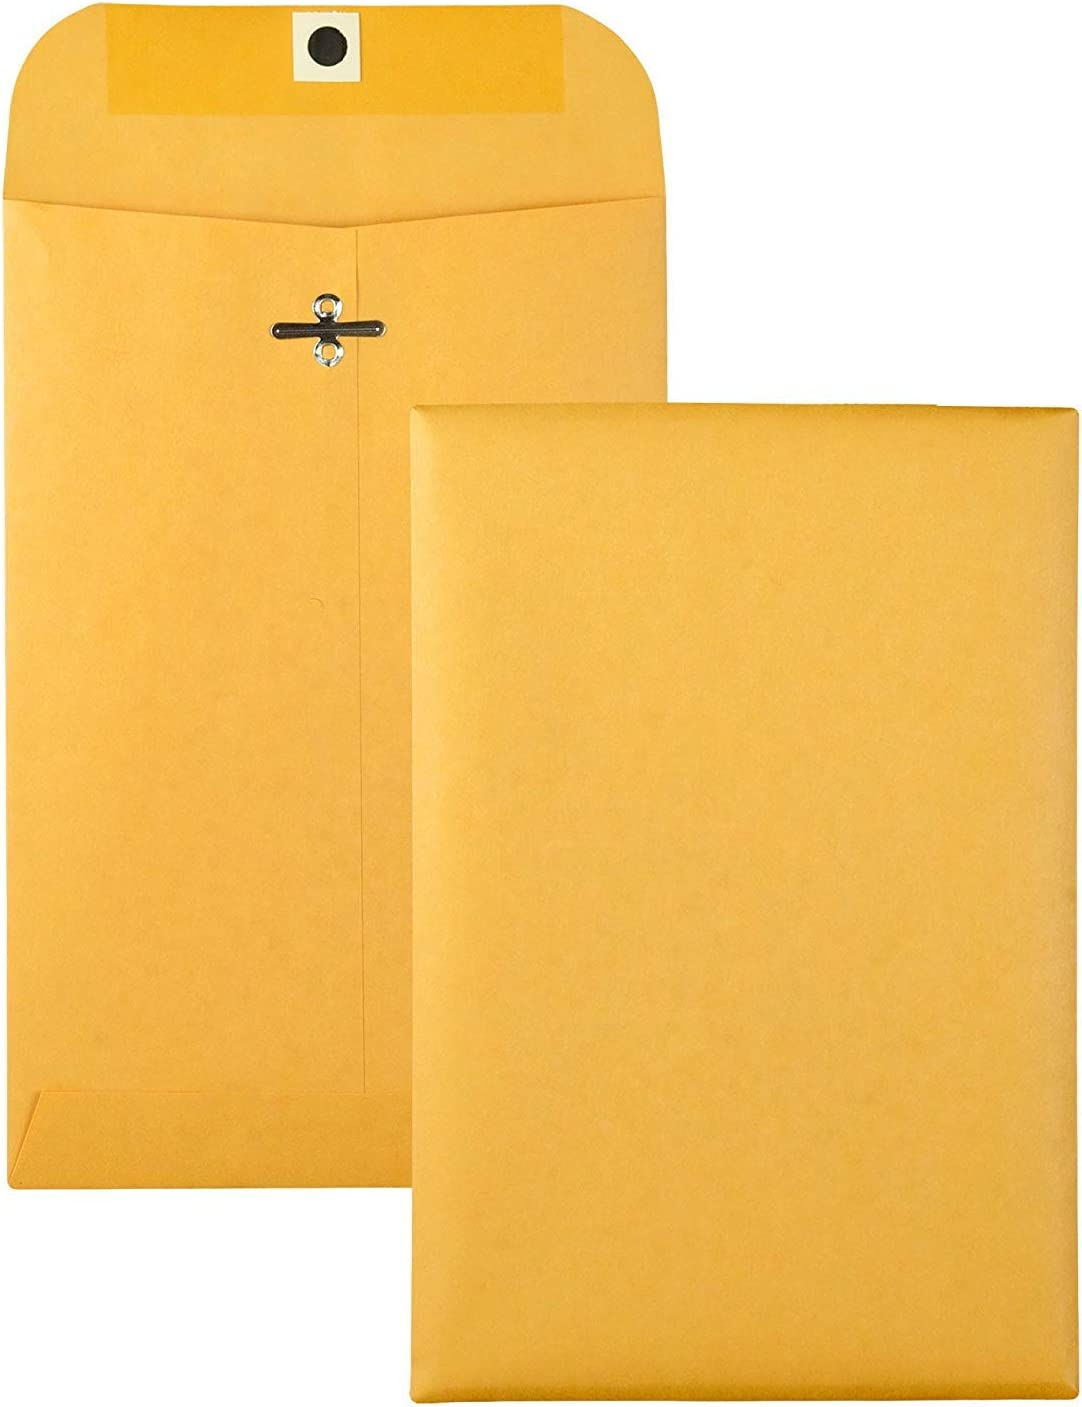 Brown Kraft Catalog Clasp Envelopes with Clasp Closure & Gummed Seal, 28lb Heavyweight Paper Envelopes, Great for Filing, Storing Or Mailing Documents, 25 Envelopes (10 x 13 inches) : Office Products